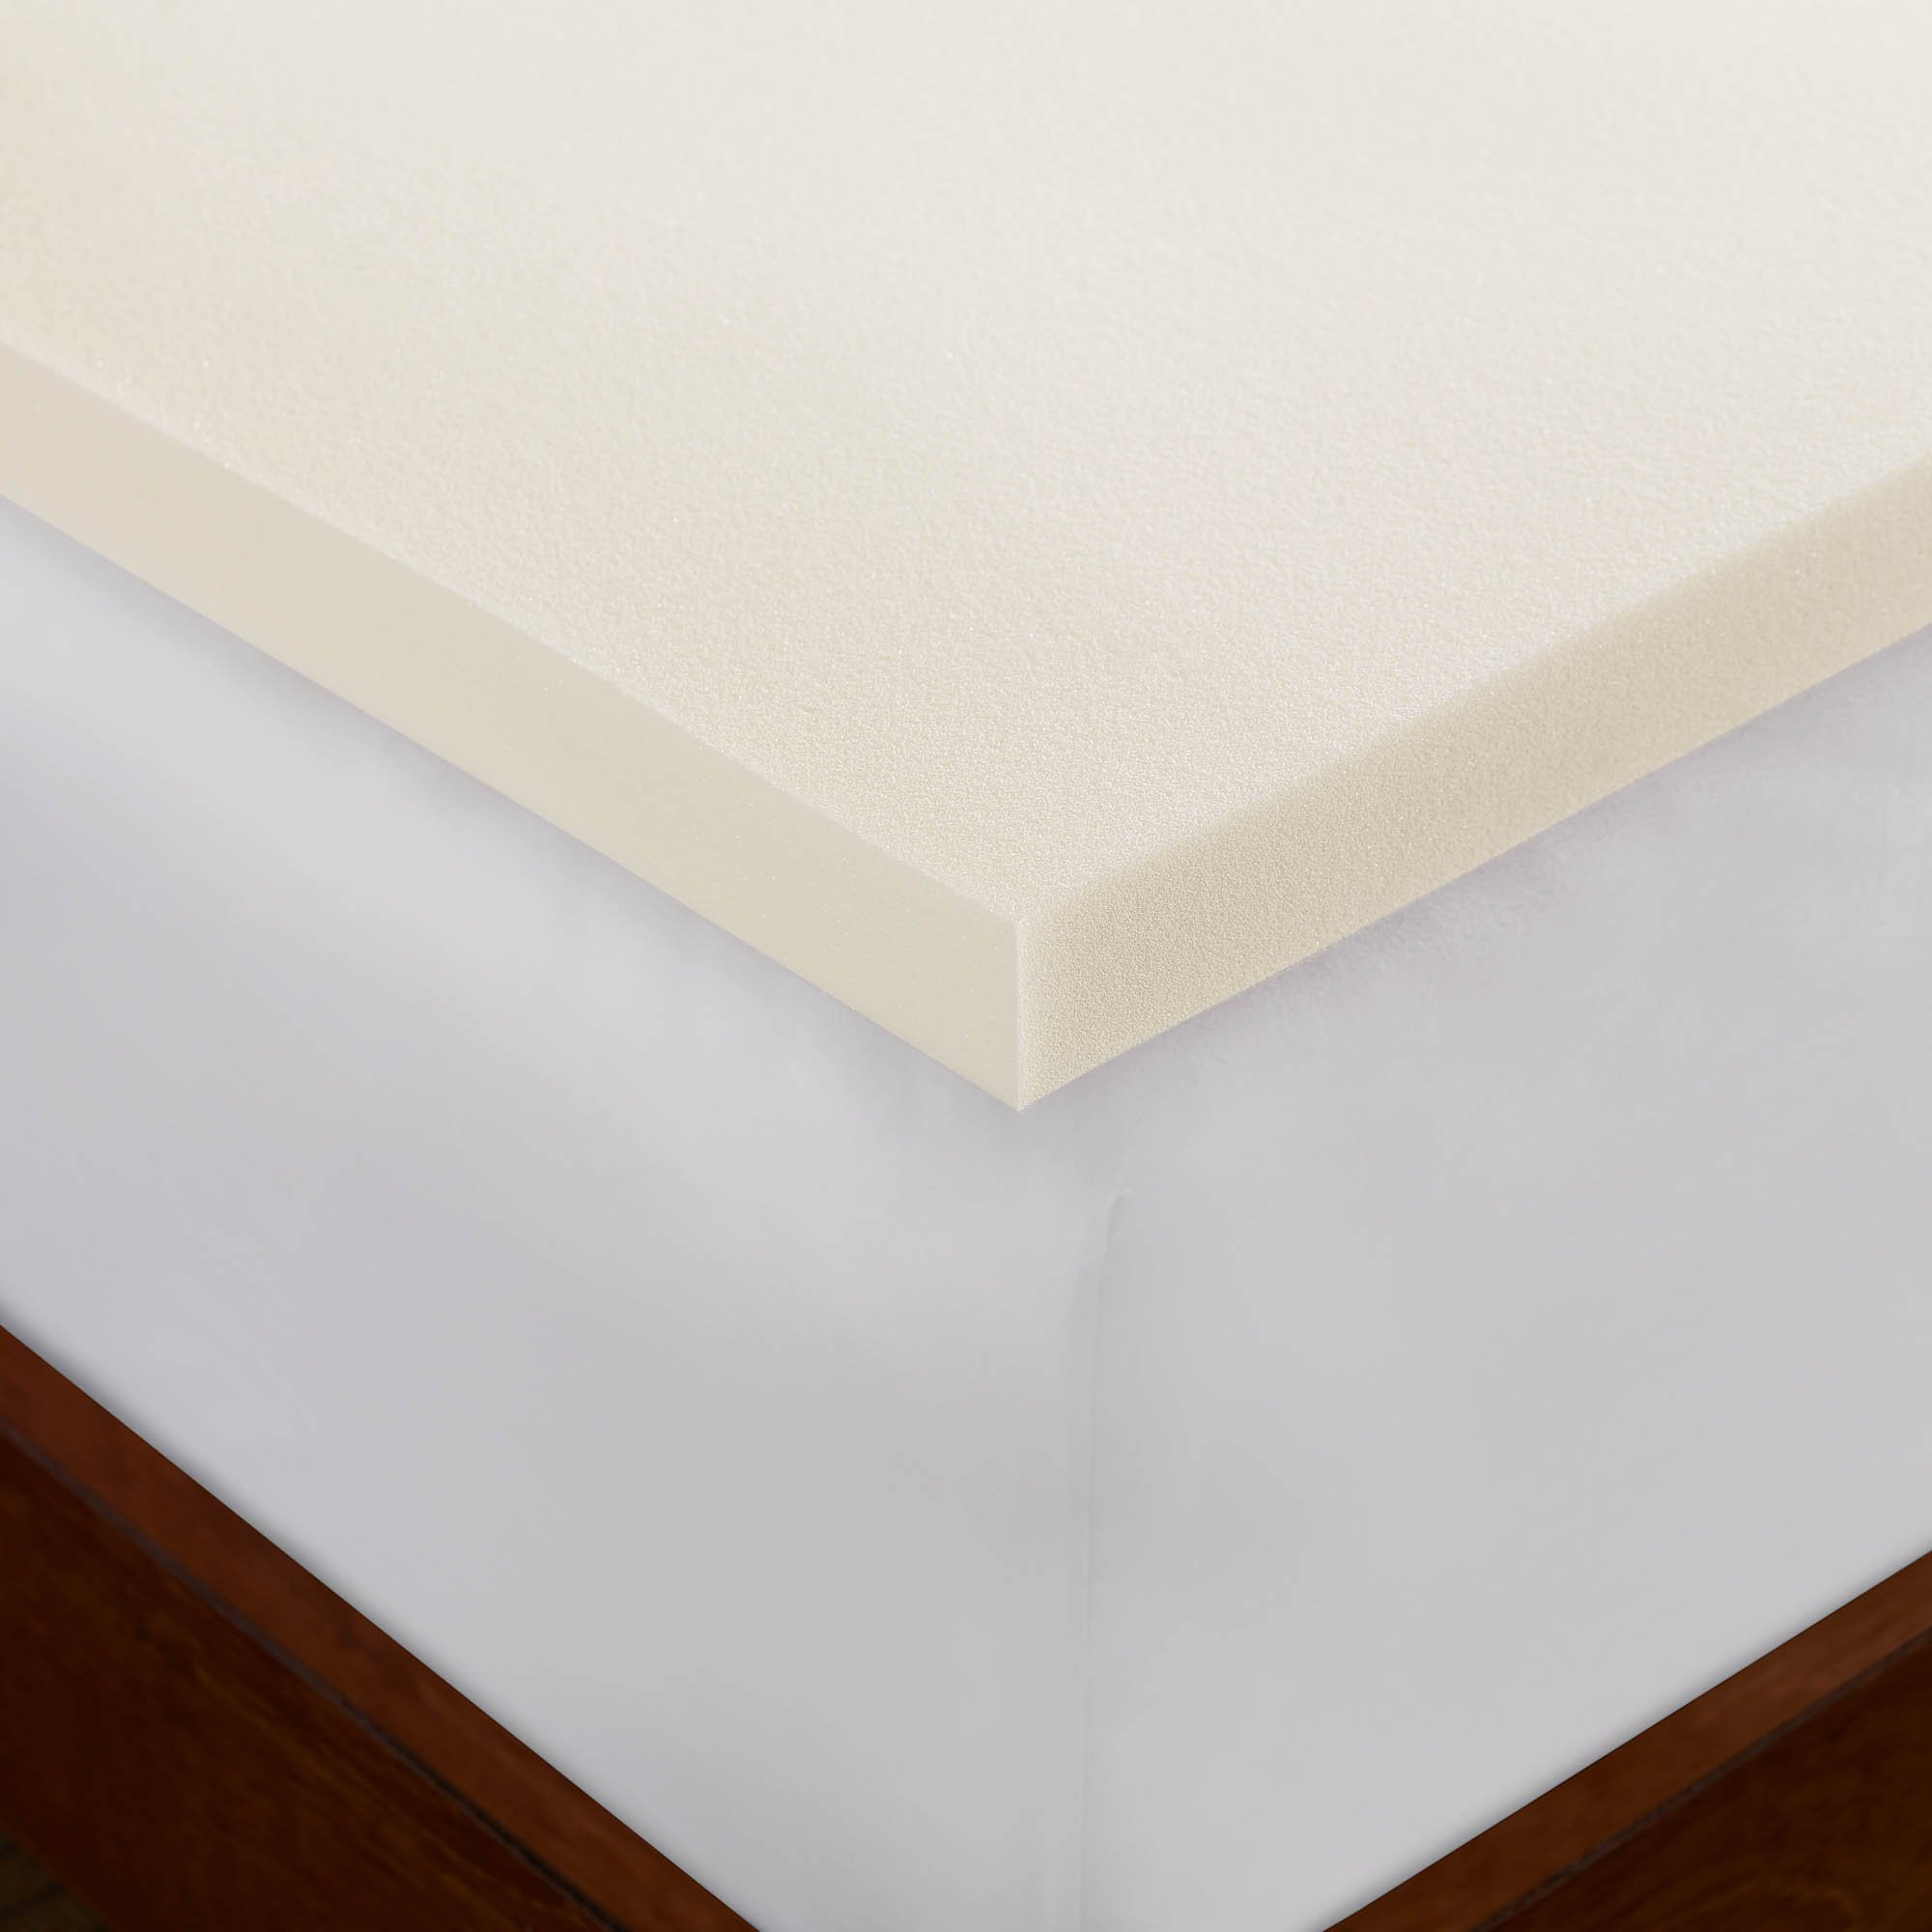 Sleep Innovations 2-inch Memory Foam Mattress Topper, Made in the USA with a 5-Year Warranty - Queen